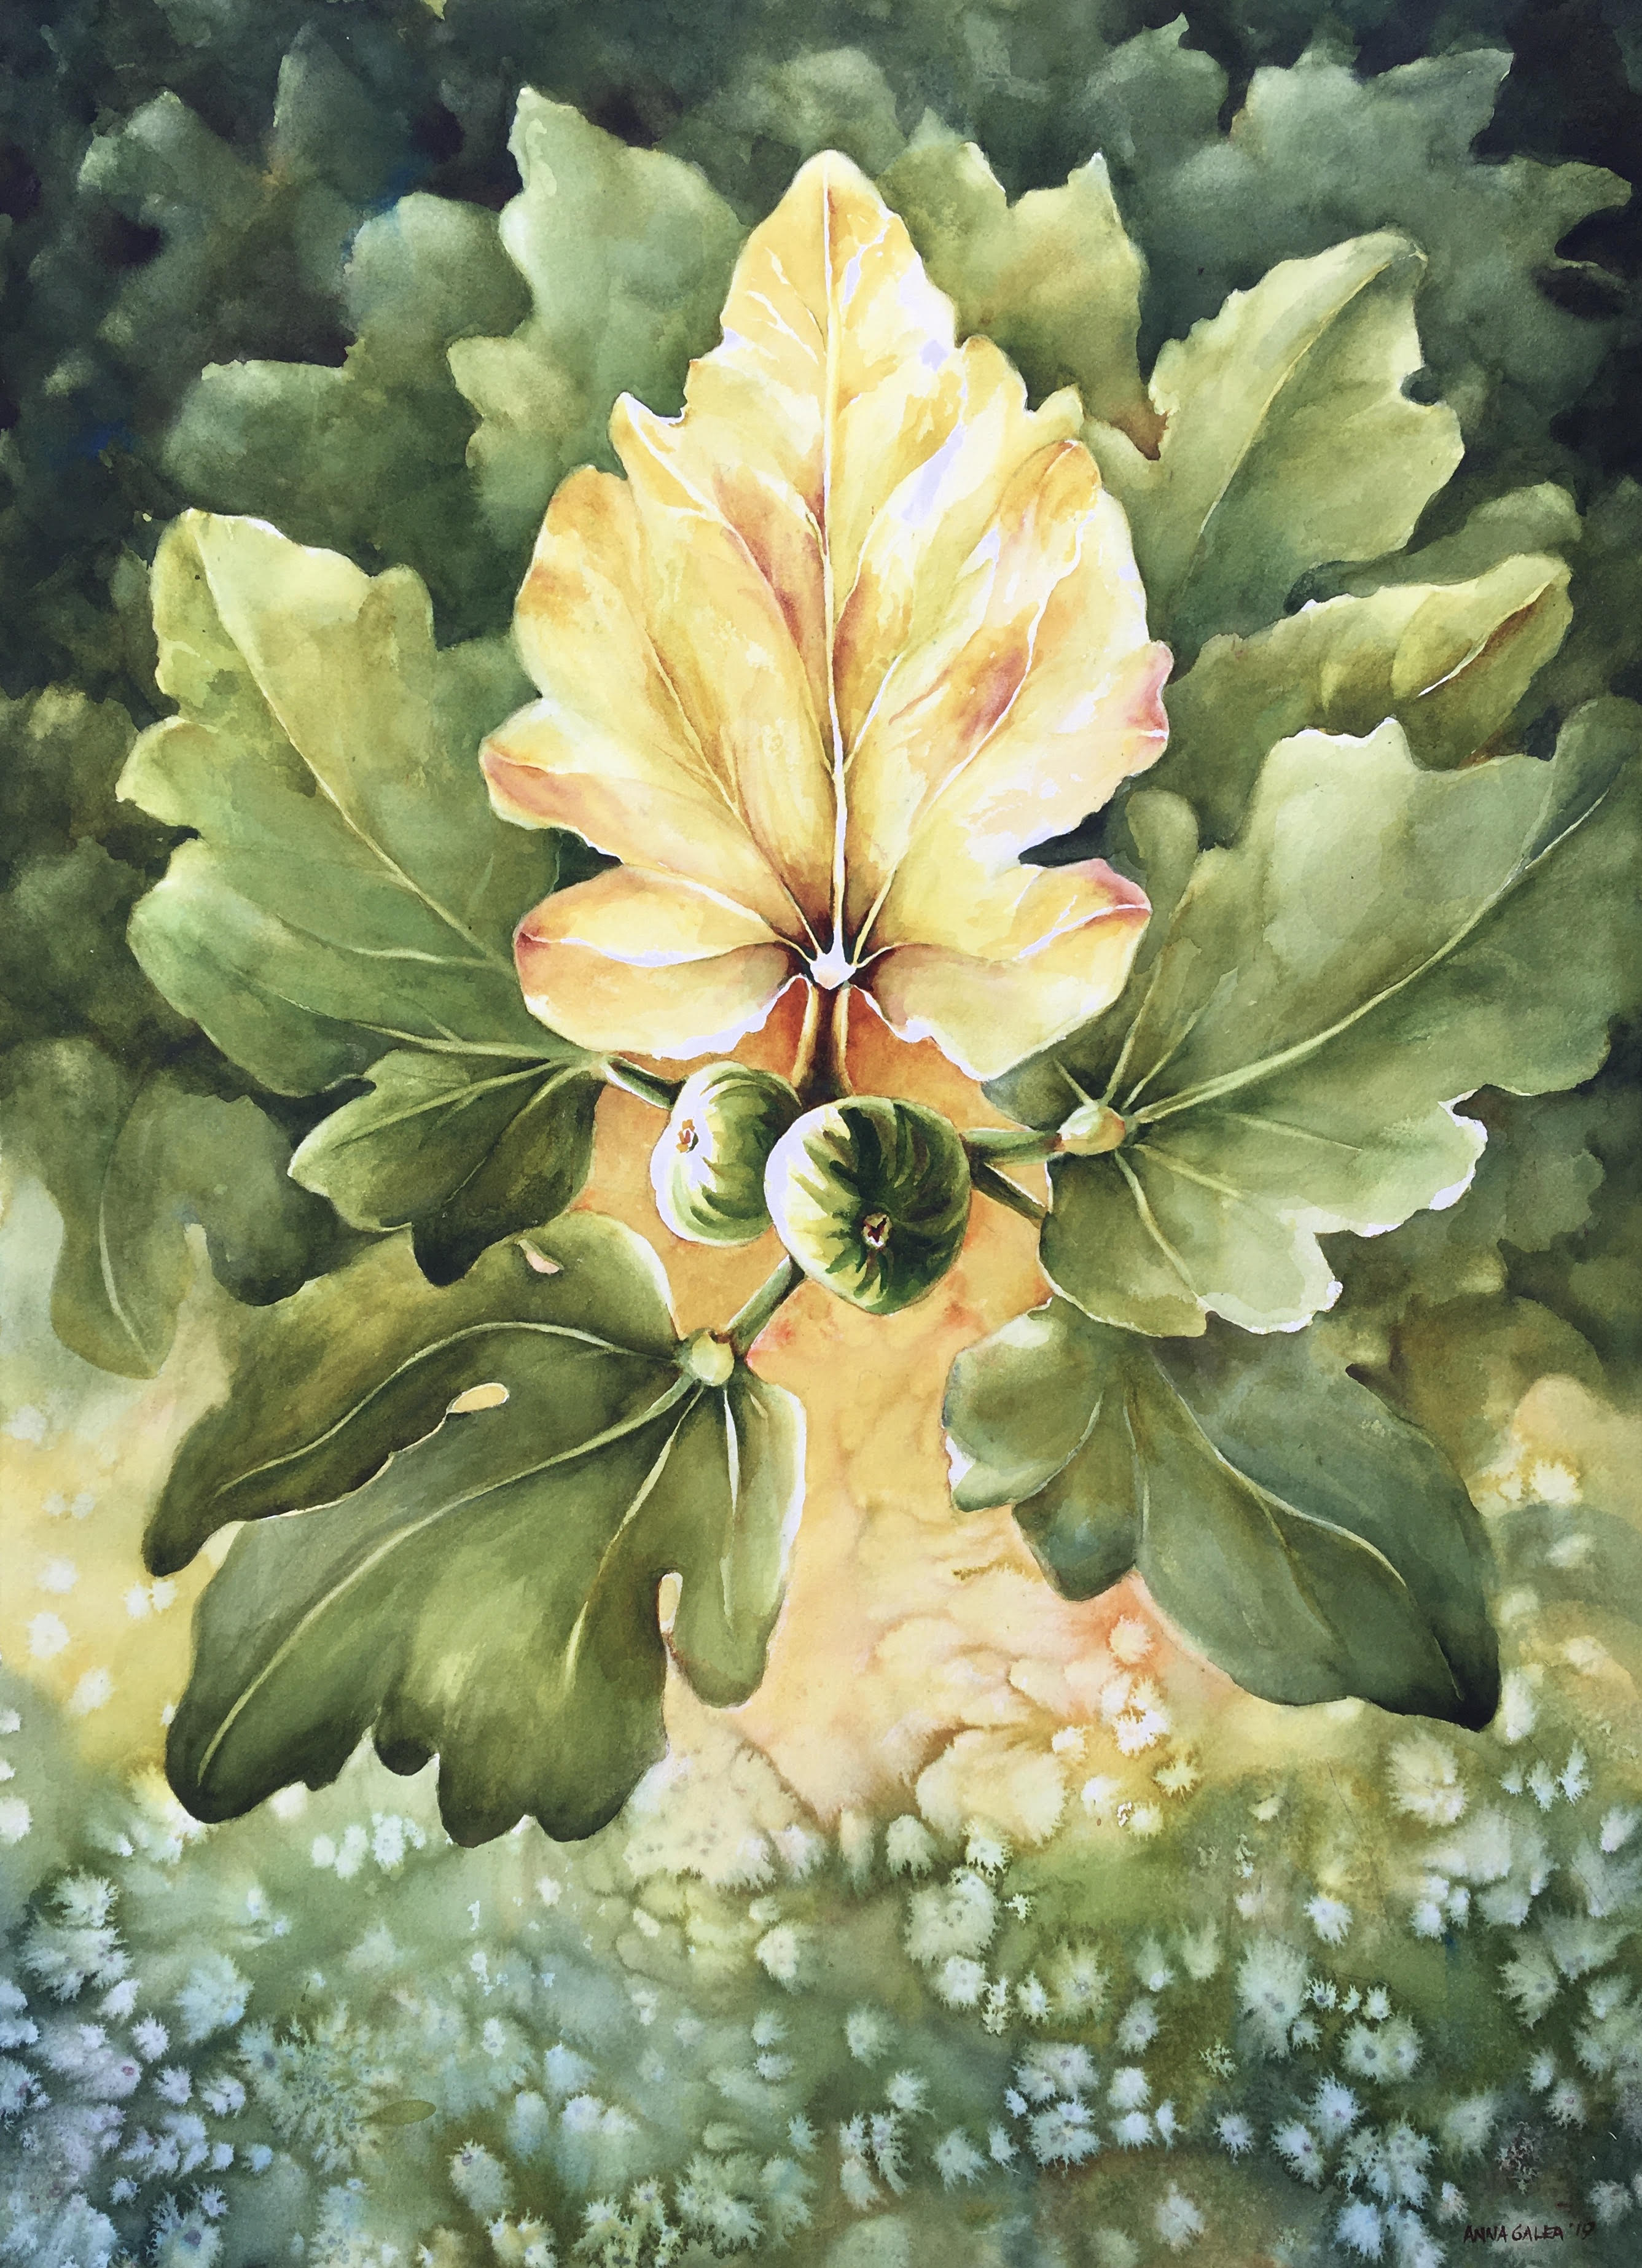 The Fig Leaf, 73X53cm, Watercolour